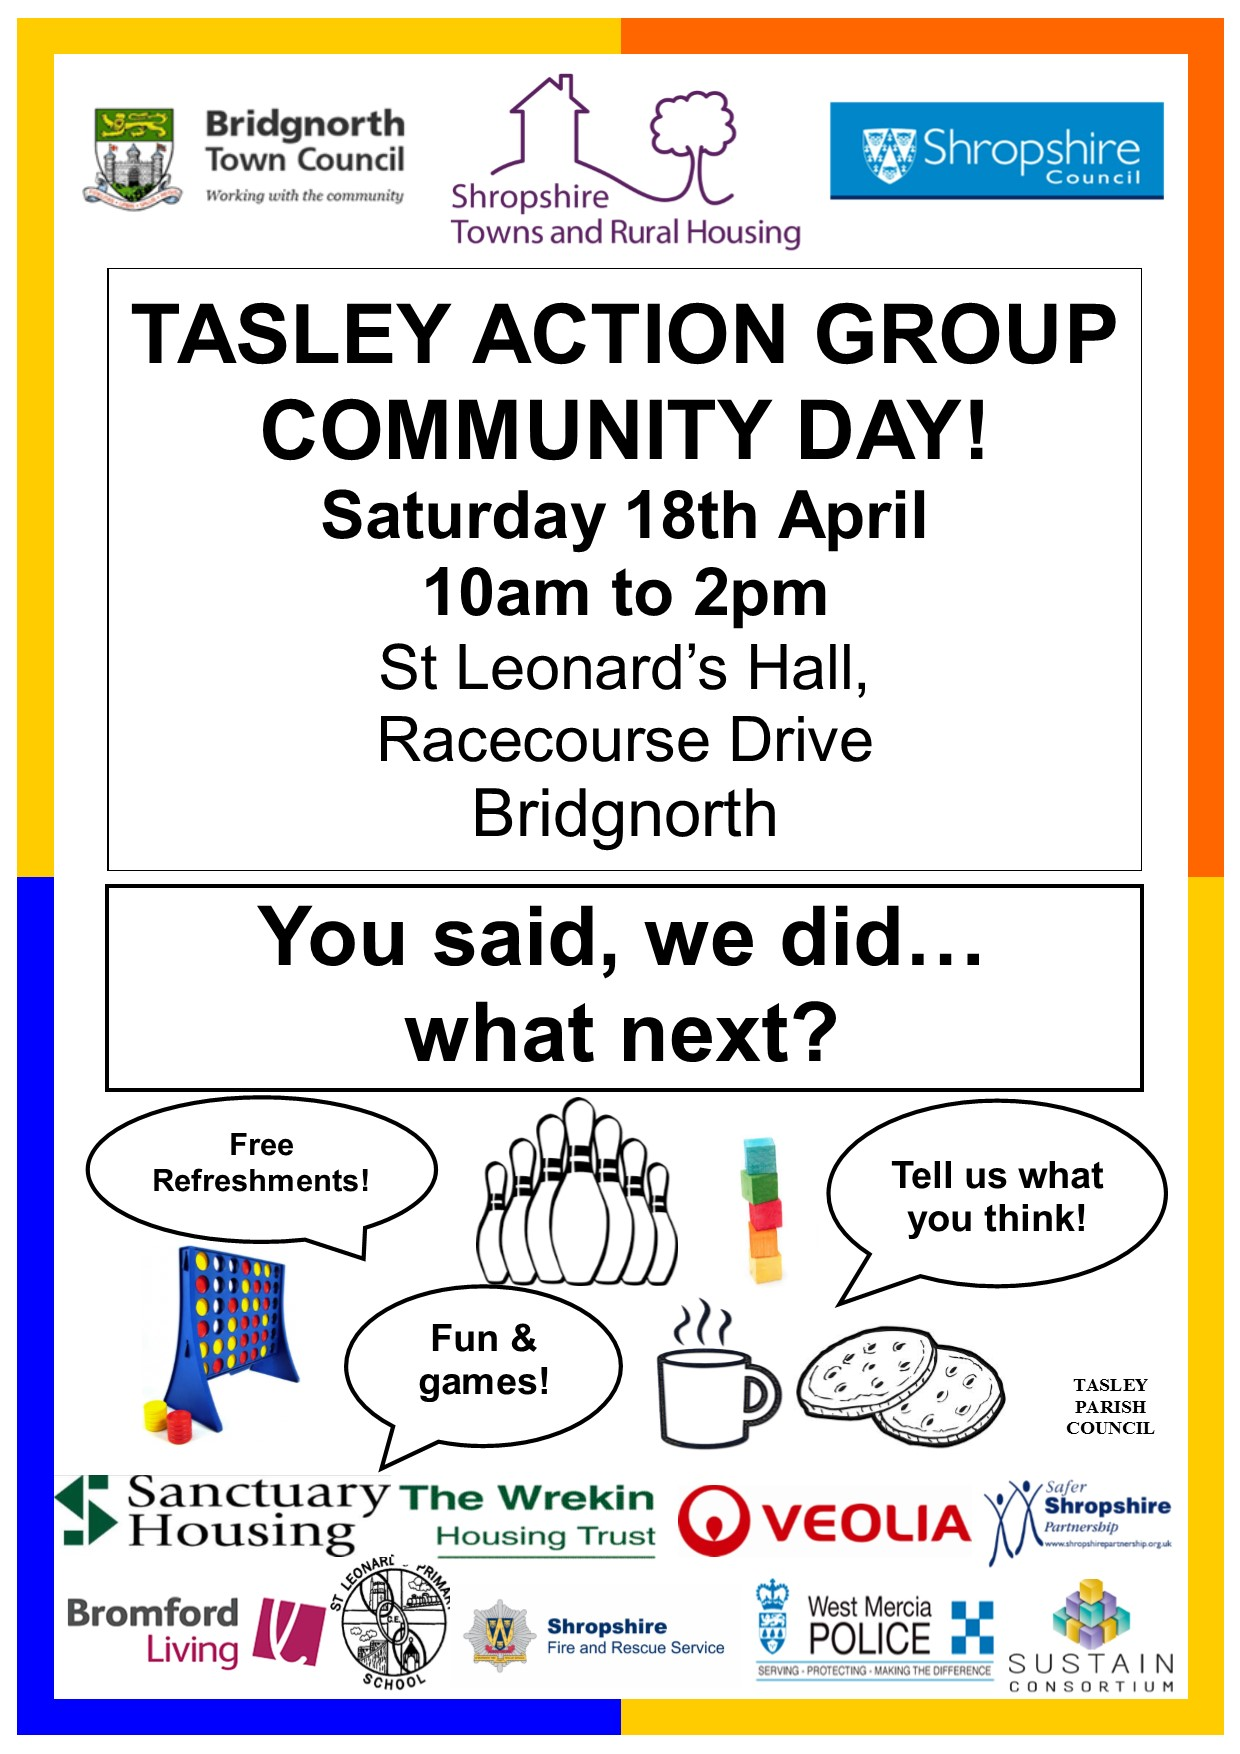 18th April event poster for Facebook and press release